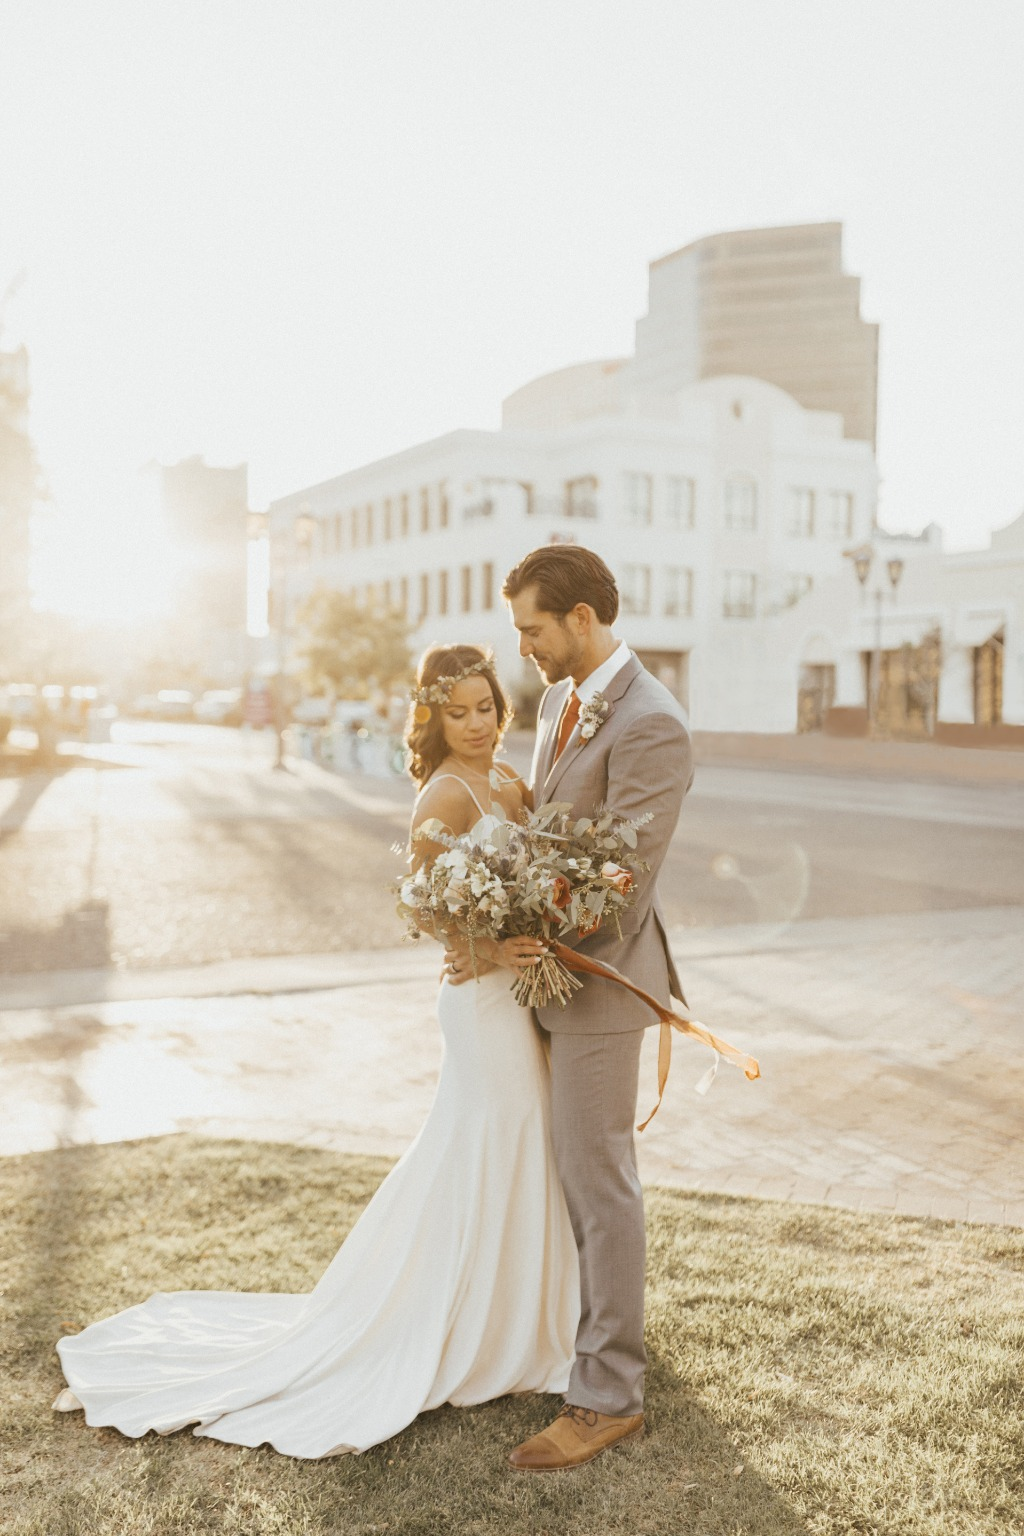 Bre and Eric had a beautifully calm wedding day in Downtown Phoenix. We caught them right as the sun was peeking through the streets